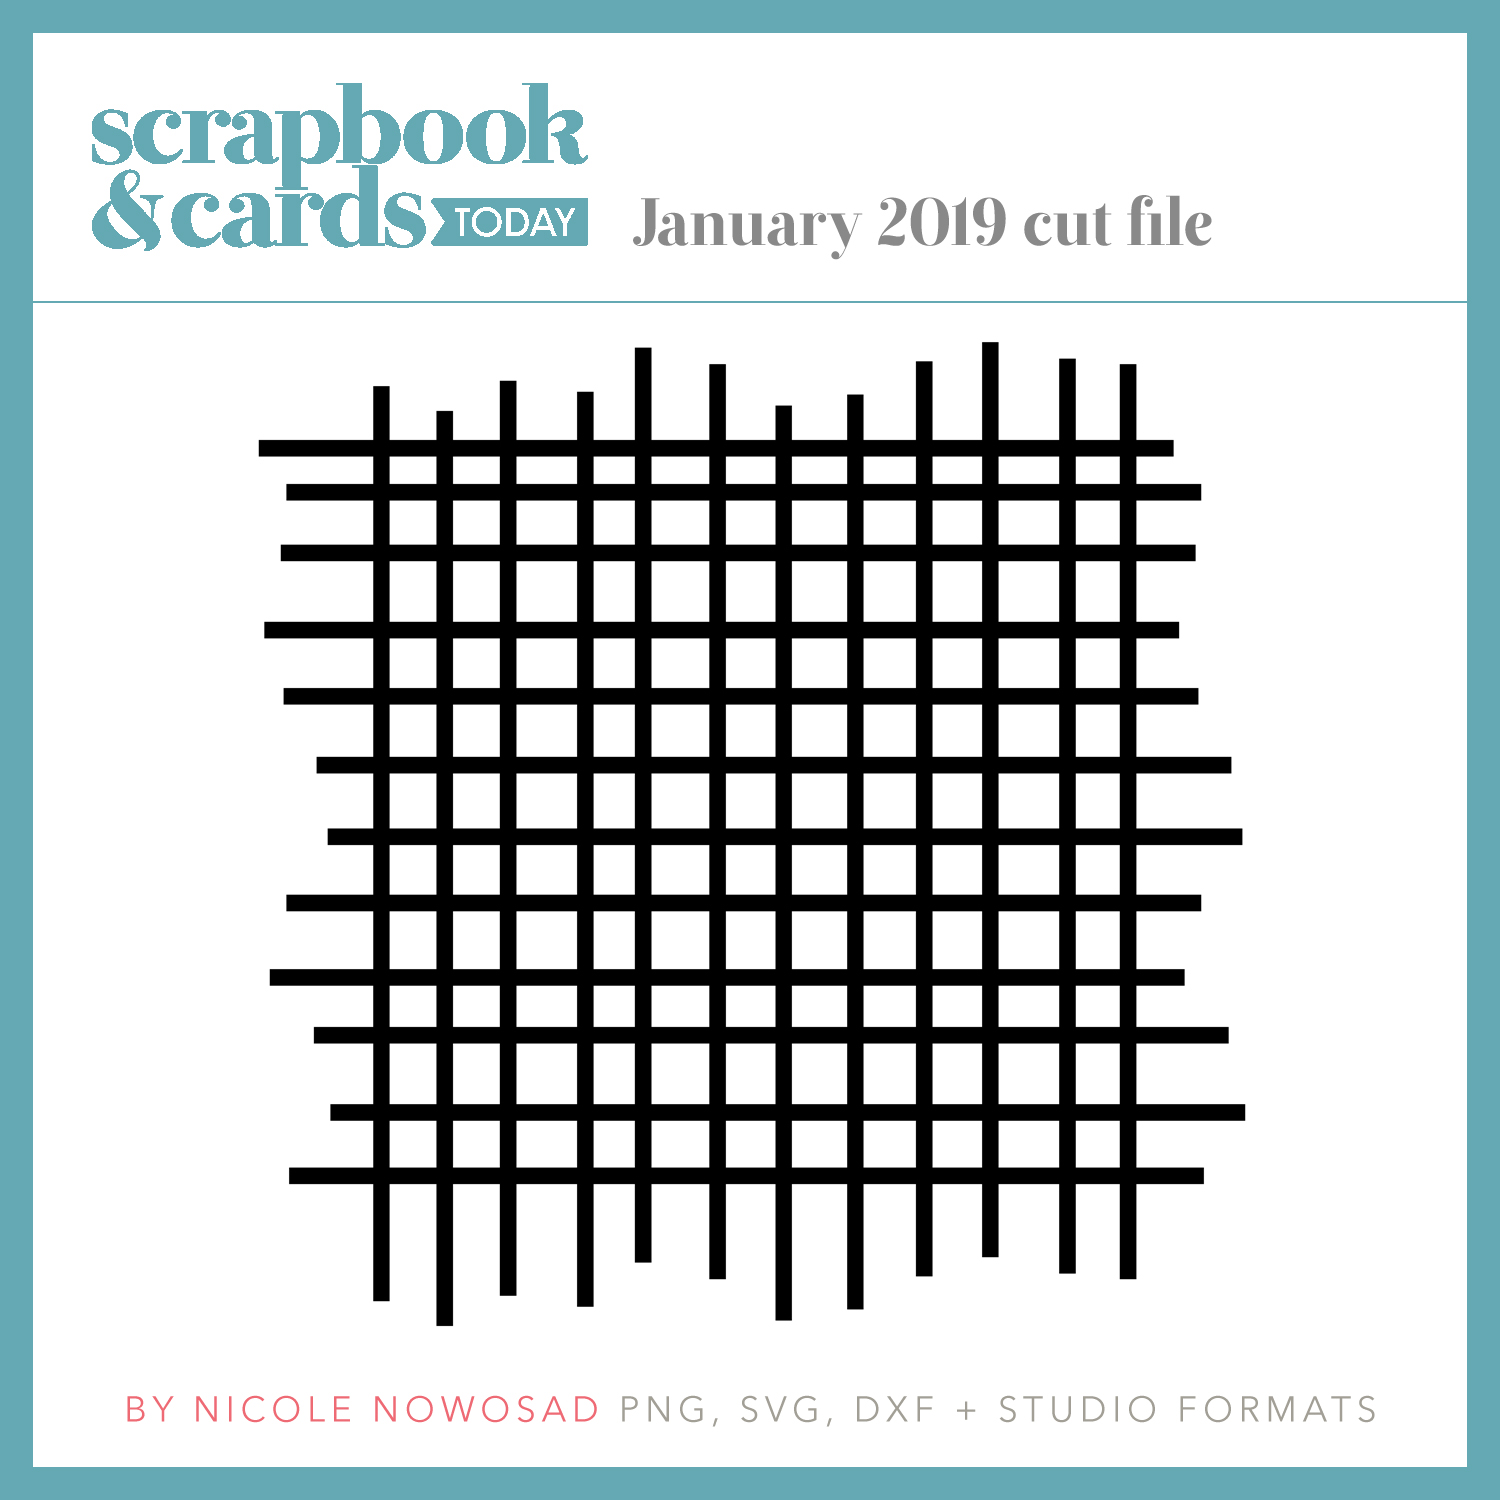 January 2019 free cut file from Scrapbook & Cards Today